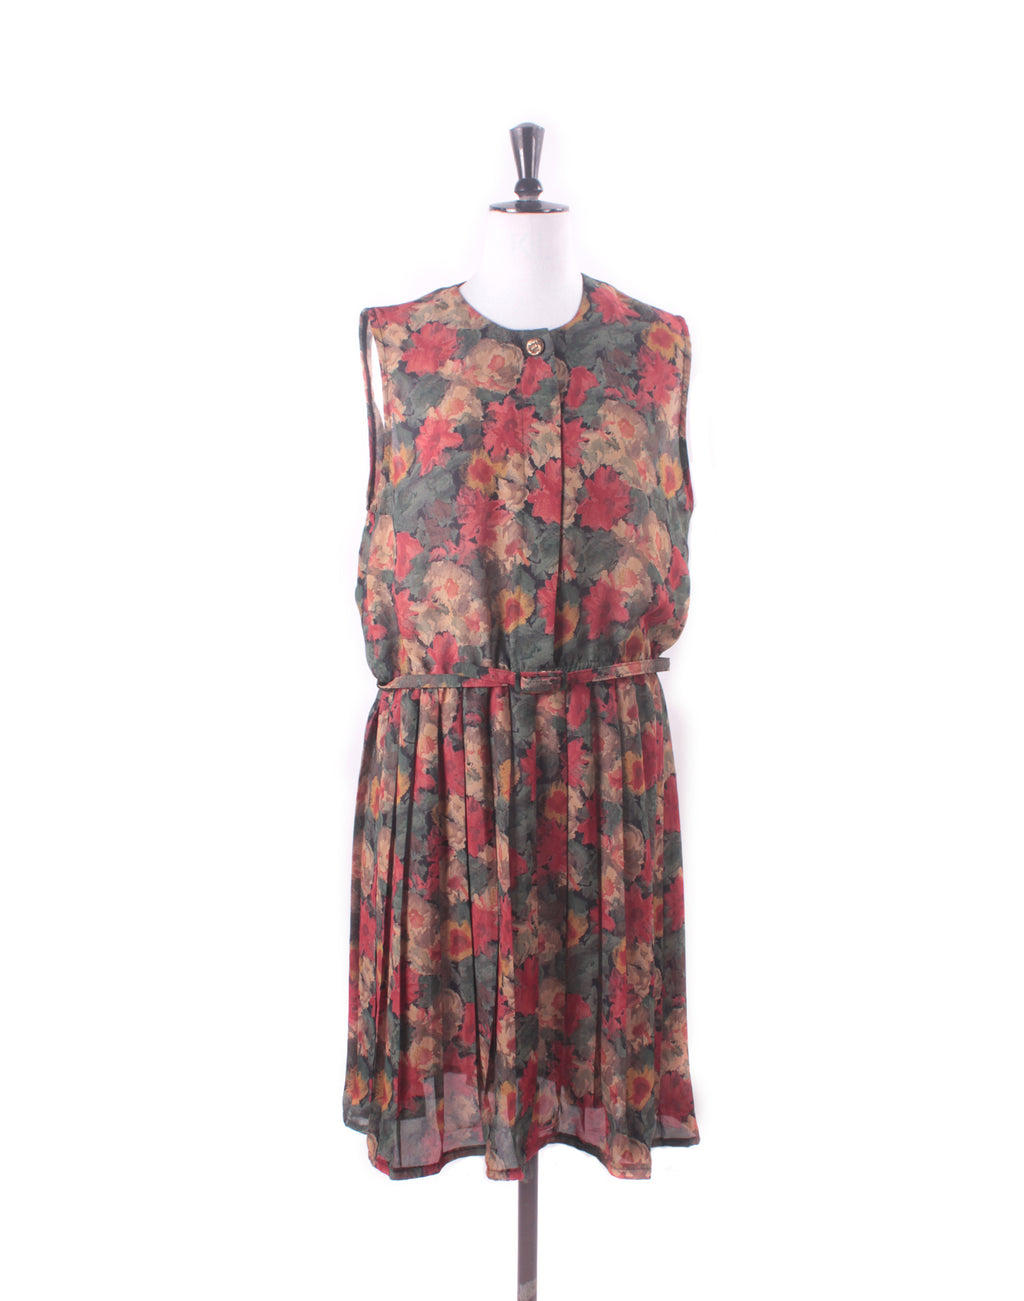 Vintage 80's Upcycled Brown Floral Dress